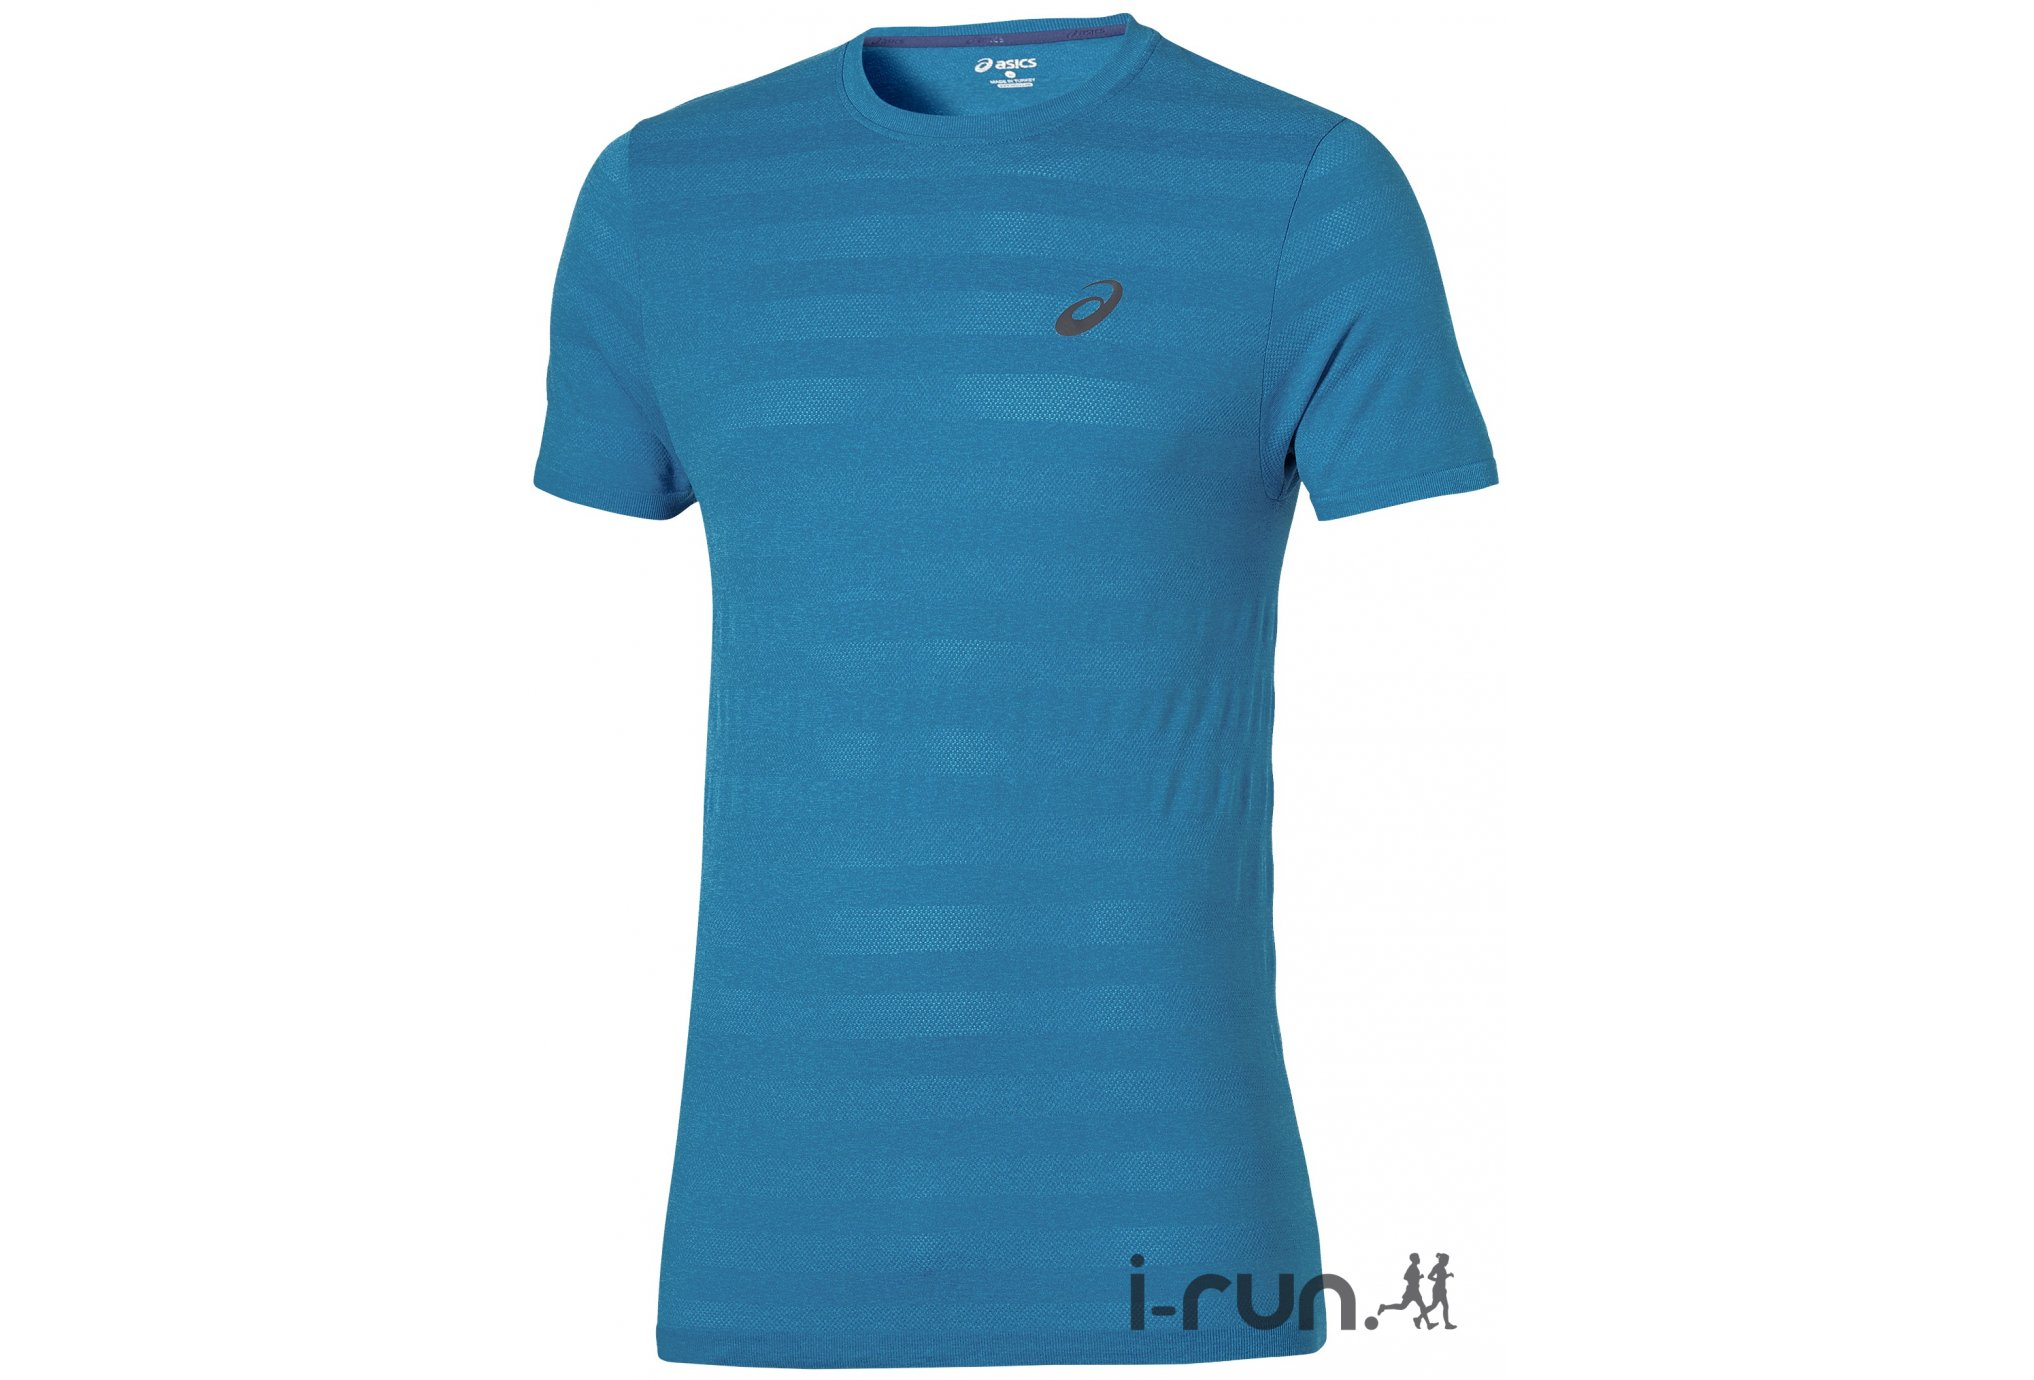 Asics Tee-shirt FuzeX Seamless M vêtement running homme